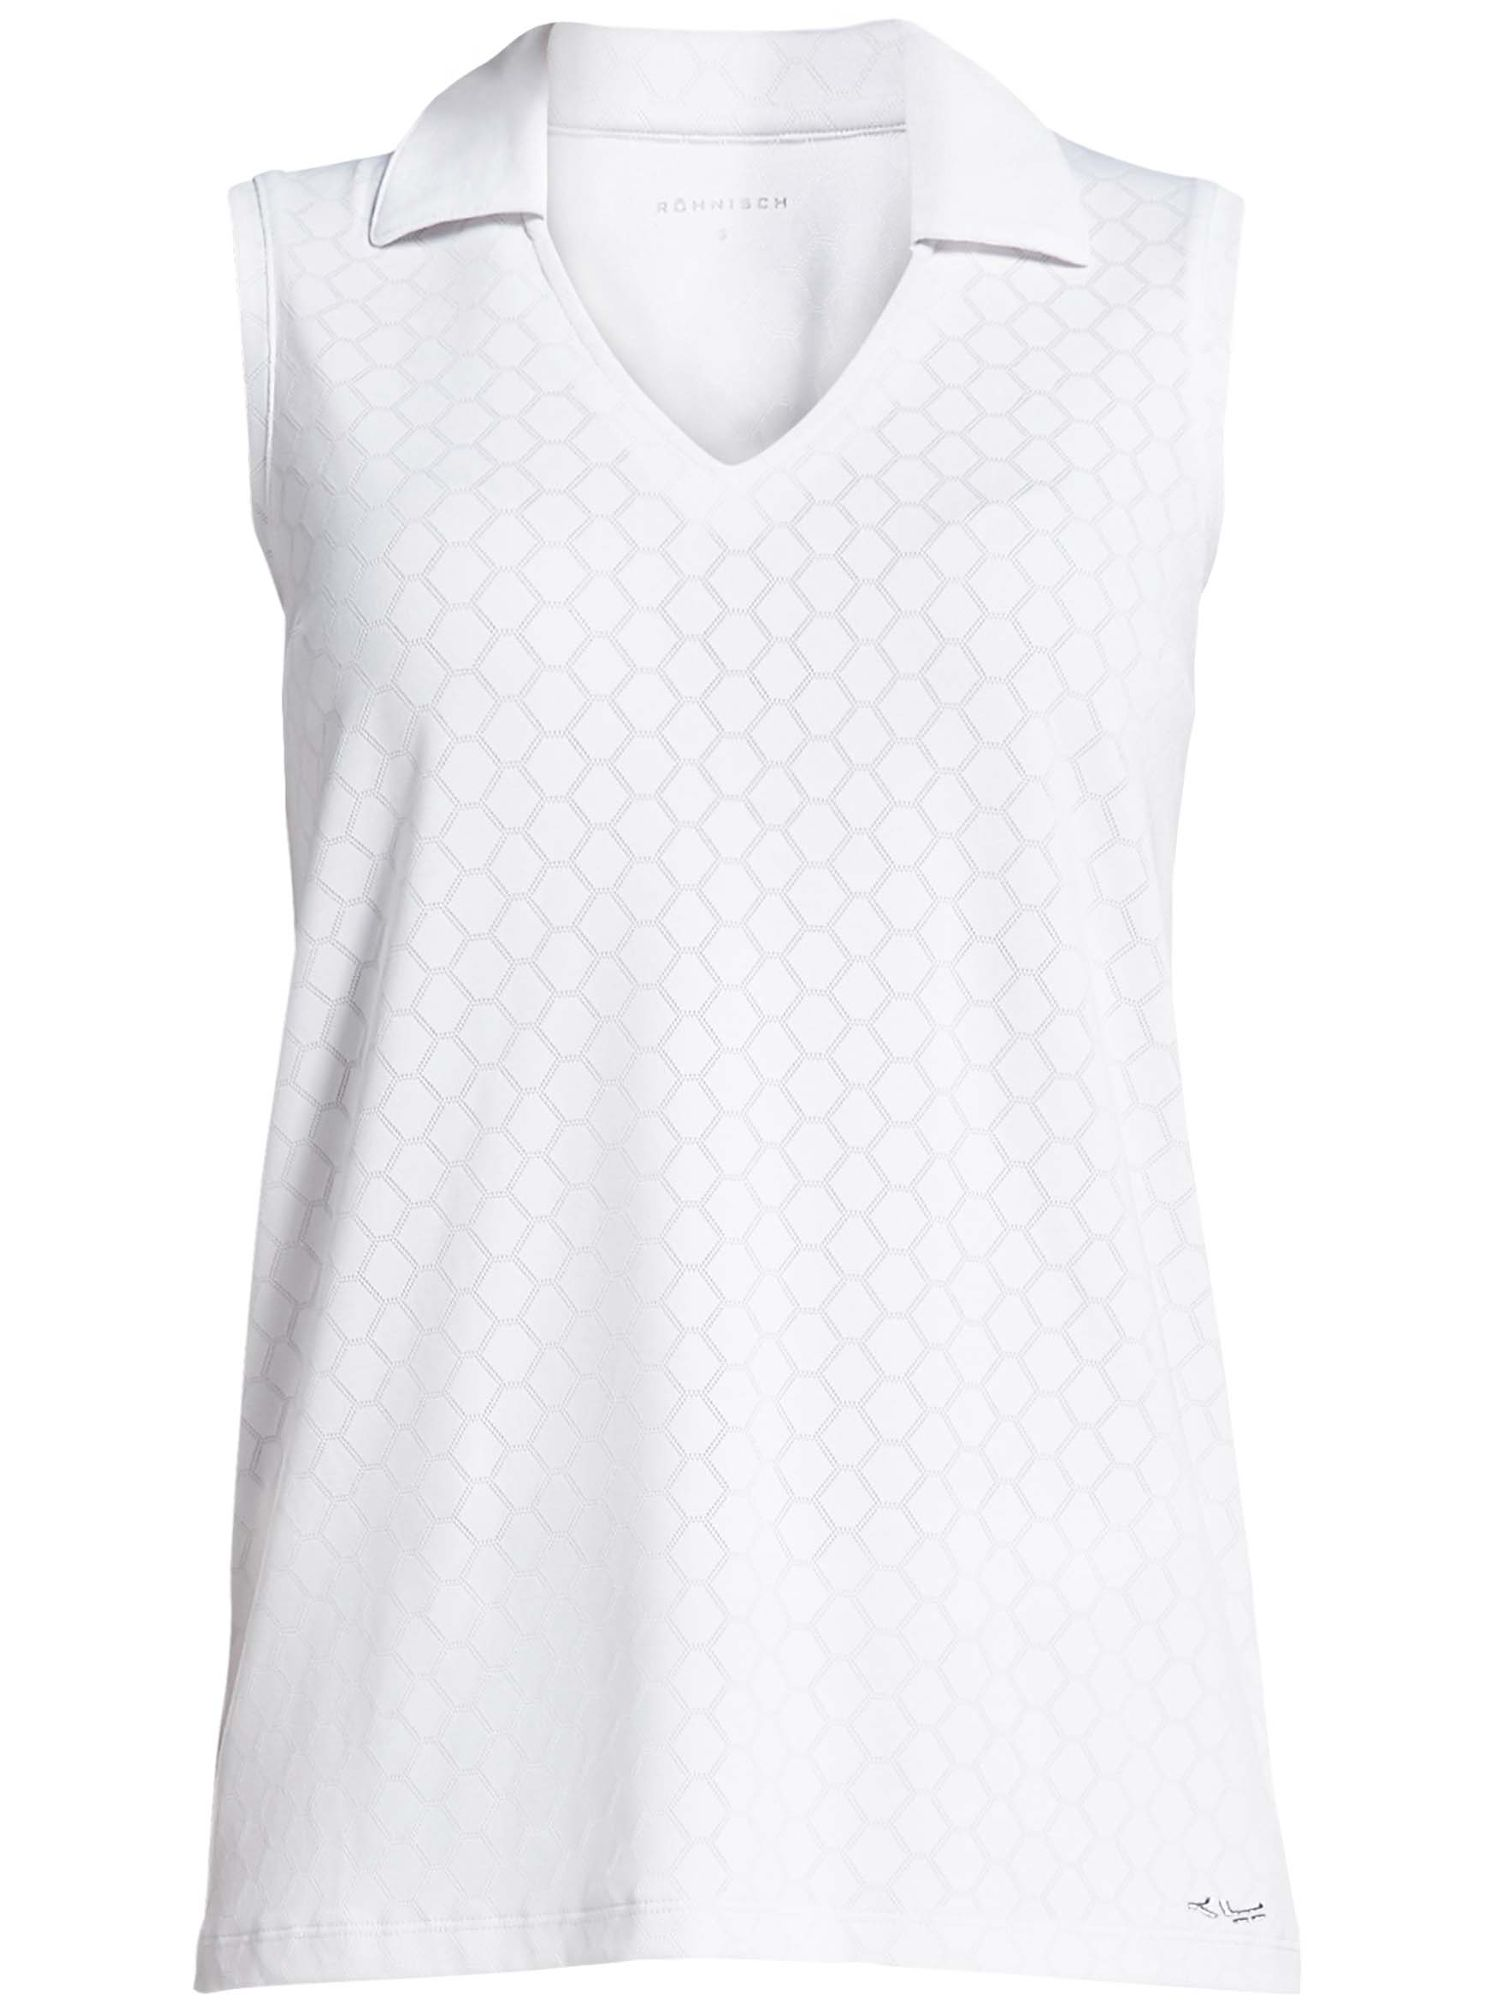 Rohnisch Jacquard Sleeveless Polo, White